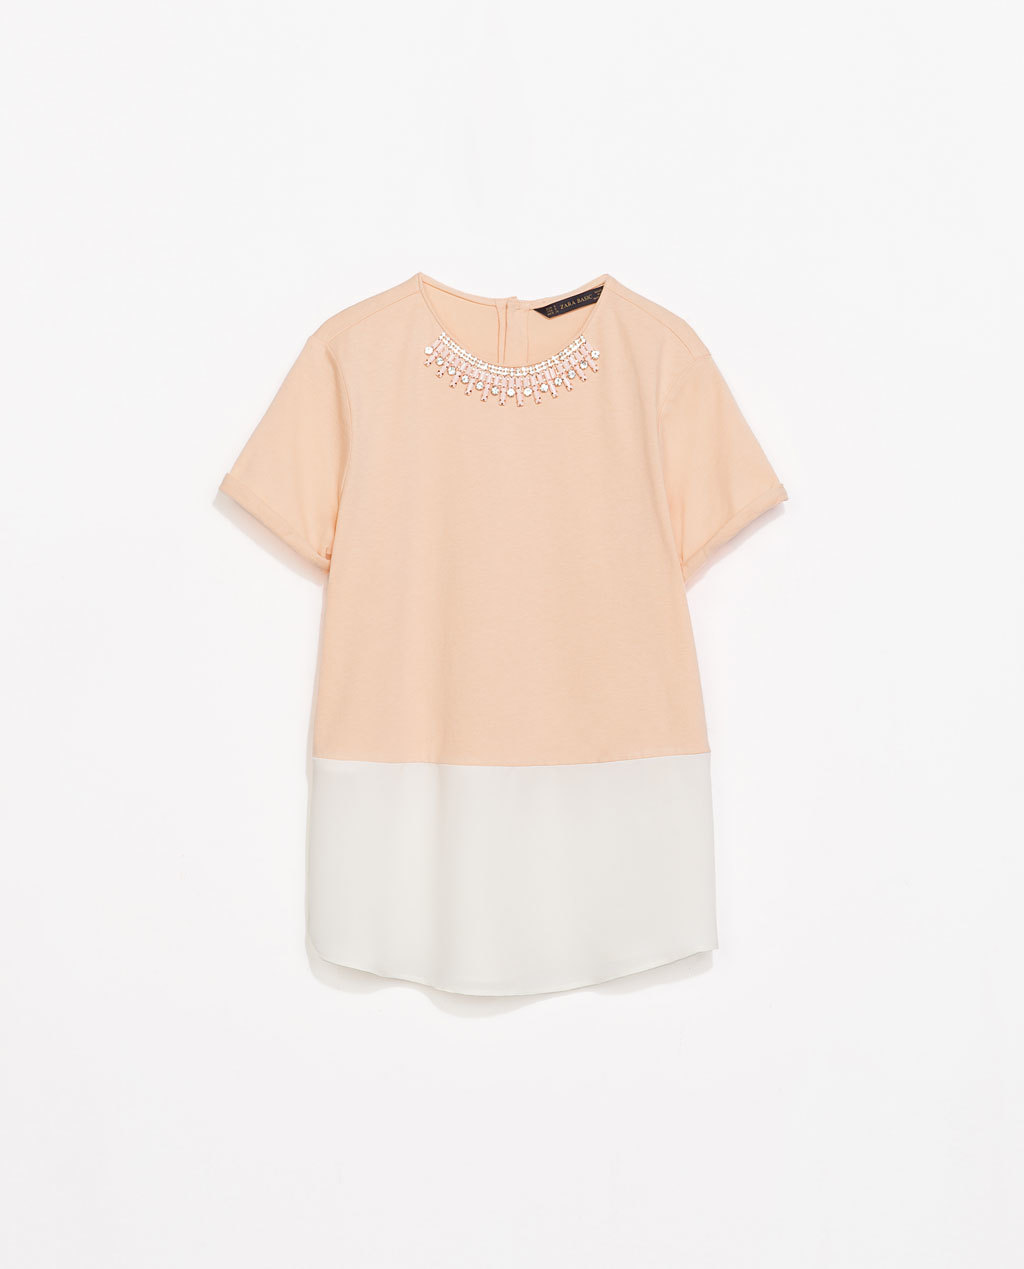 Combined Top With Necklace - neckline: round neck; style: t-shirt; secondary colour: ivory/cream; predominant colour: nude; occasions: casual, creative work; length: standard; fibres: cotton - 100%; fit: straight cut; sleeve length: short sleeve; sleeve style: standard; pattern type: fabric; pattern size: standard; pattern: colourblock; texture group: jersey - stretchy/drapey; embellishment: jewels/stone; season: s/s 2014; wardrobe: highlight; embellishment location: neck